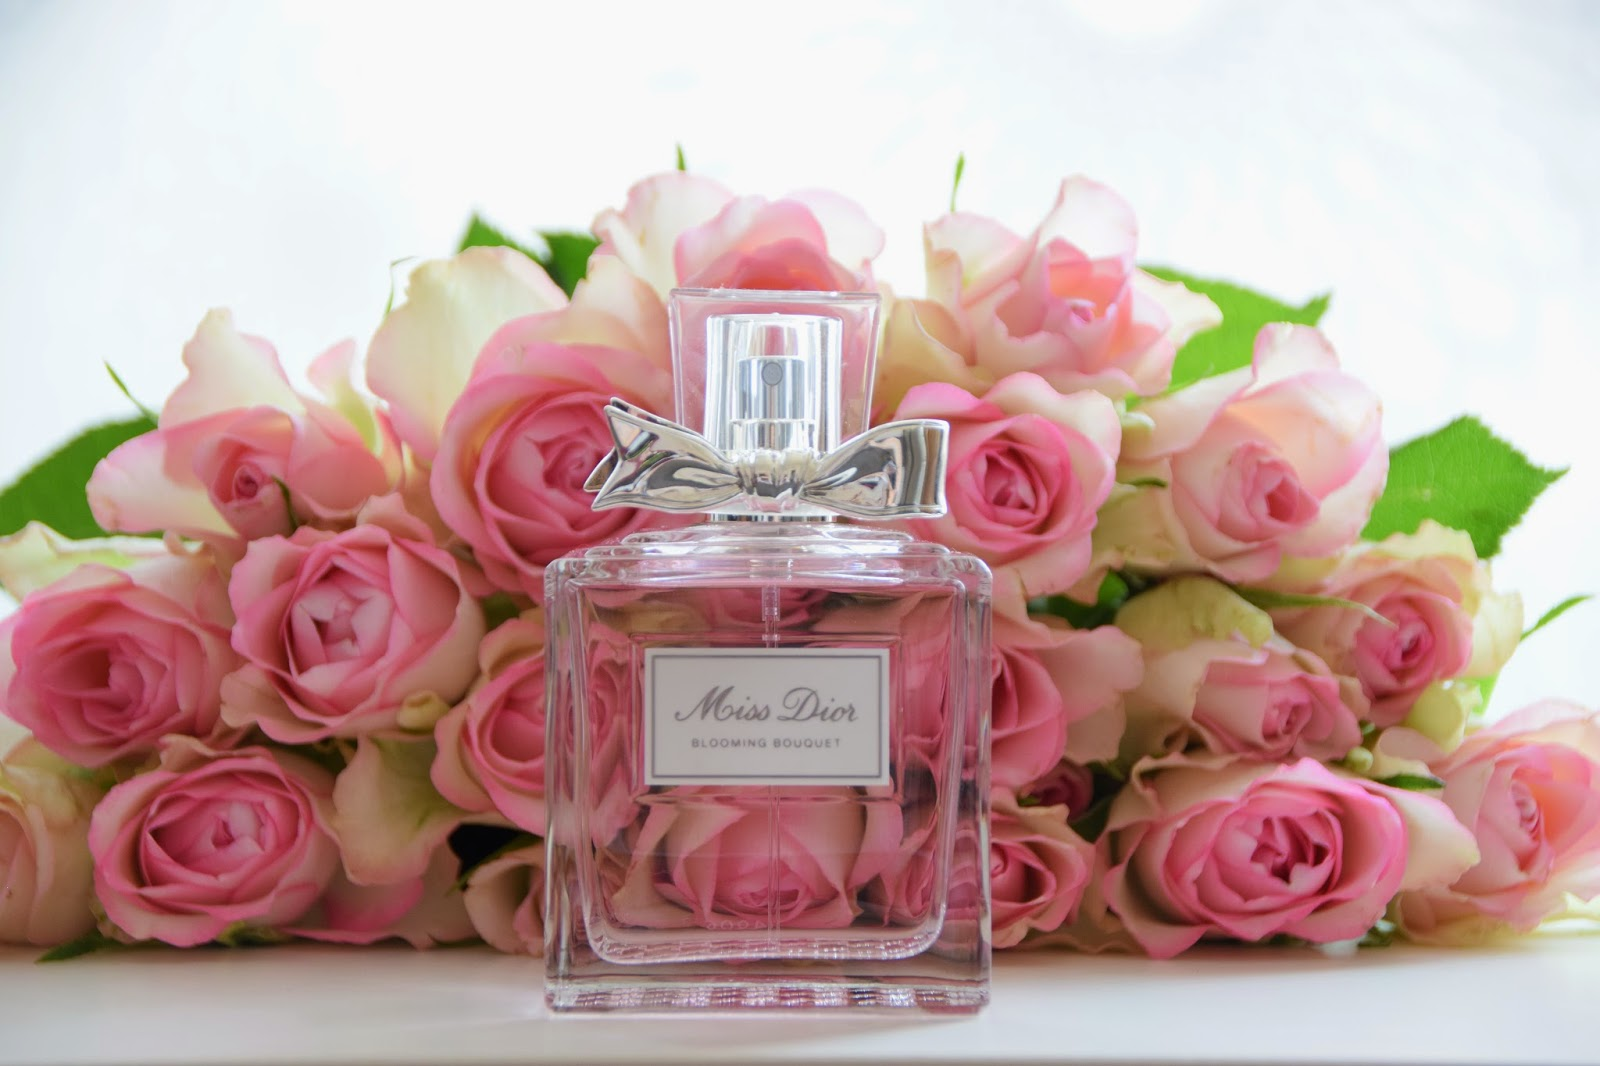 New in miss dior blooming bouquet the fashion freak diary last week a brand new fragrance came home with me miss dior blooming bouquet by dior after discovering it in a magazine and on several blogs i just izmirmasajfo